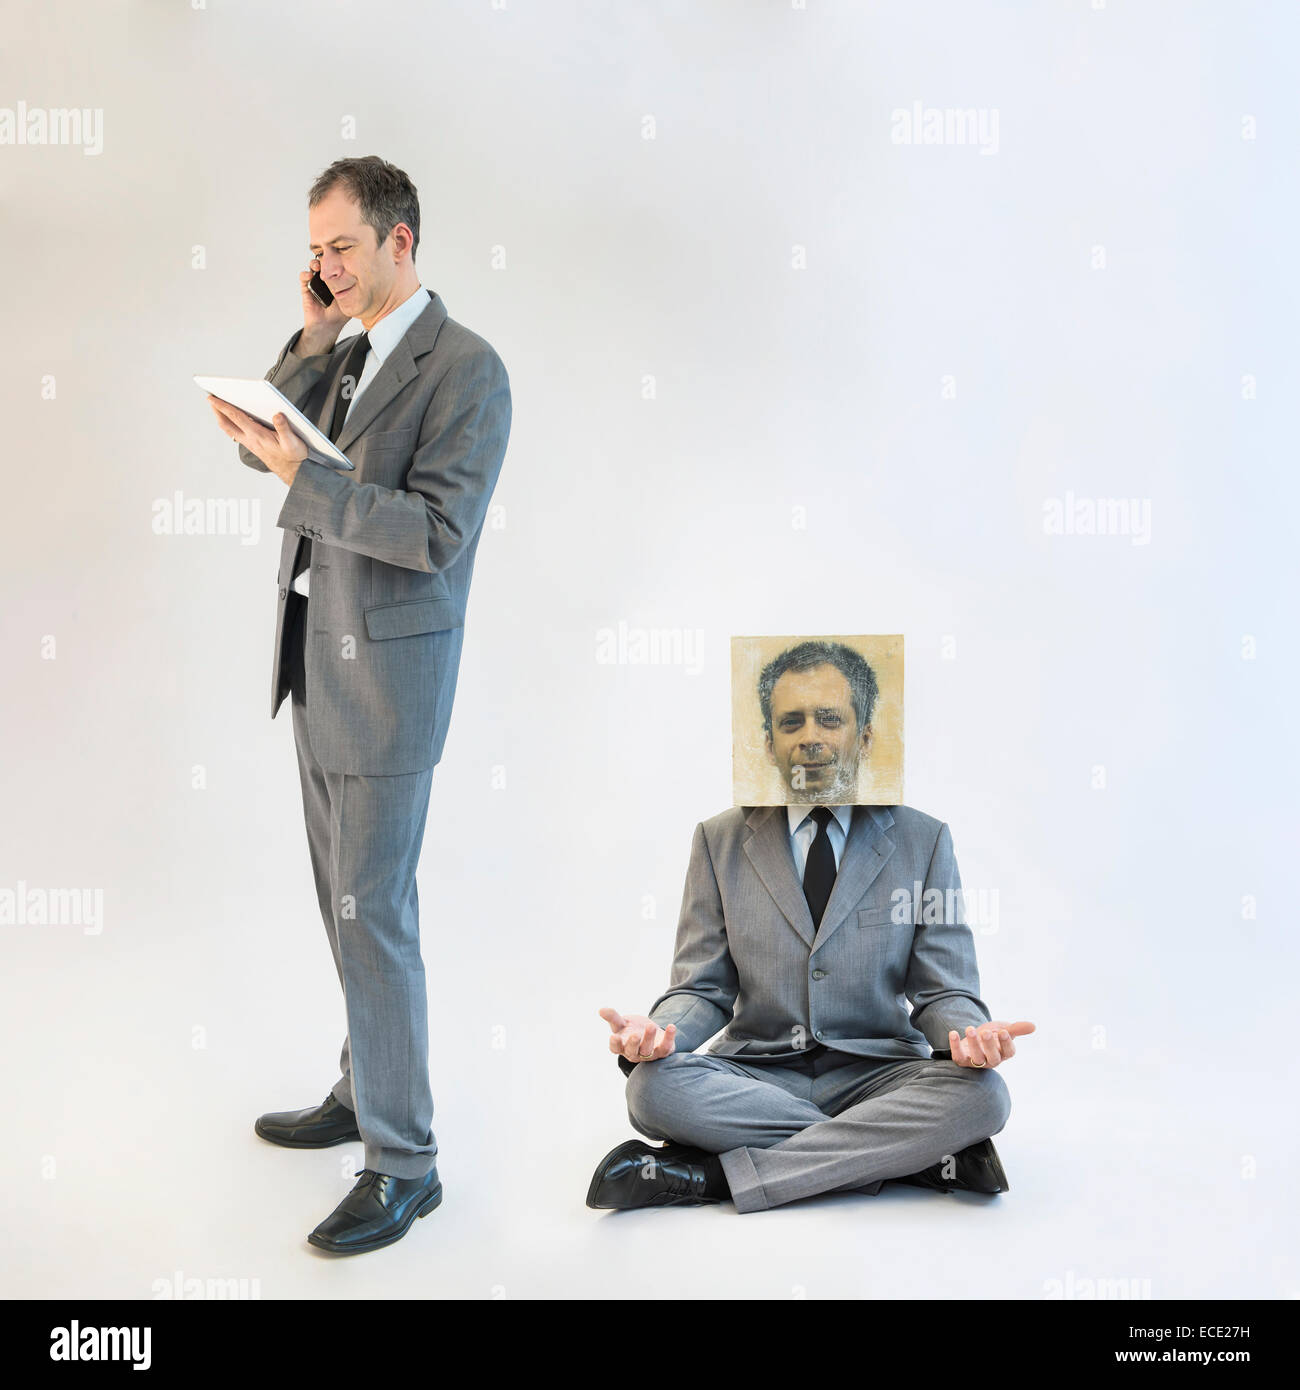 Businessman imagining self image of meditating while multitasking - Stock Image